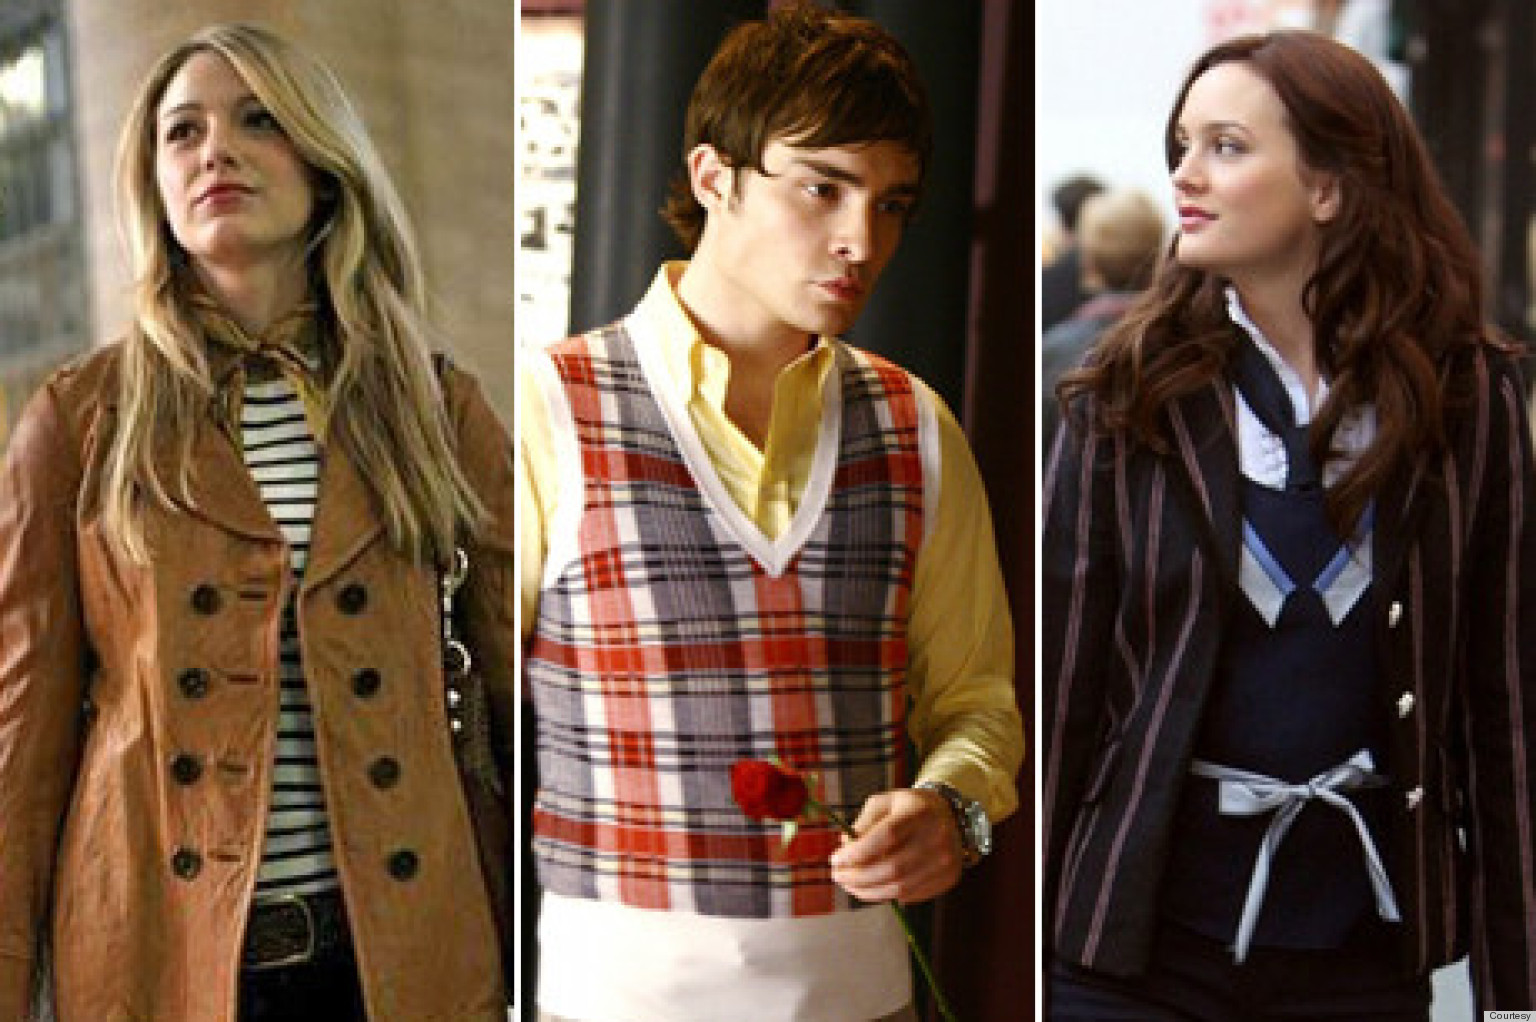 gossip girl' series finale: a look back at the fashion from all 6